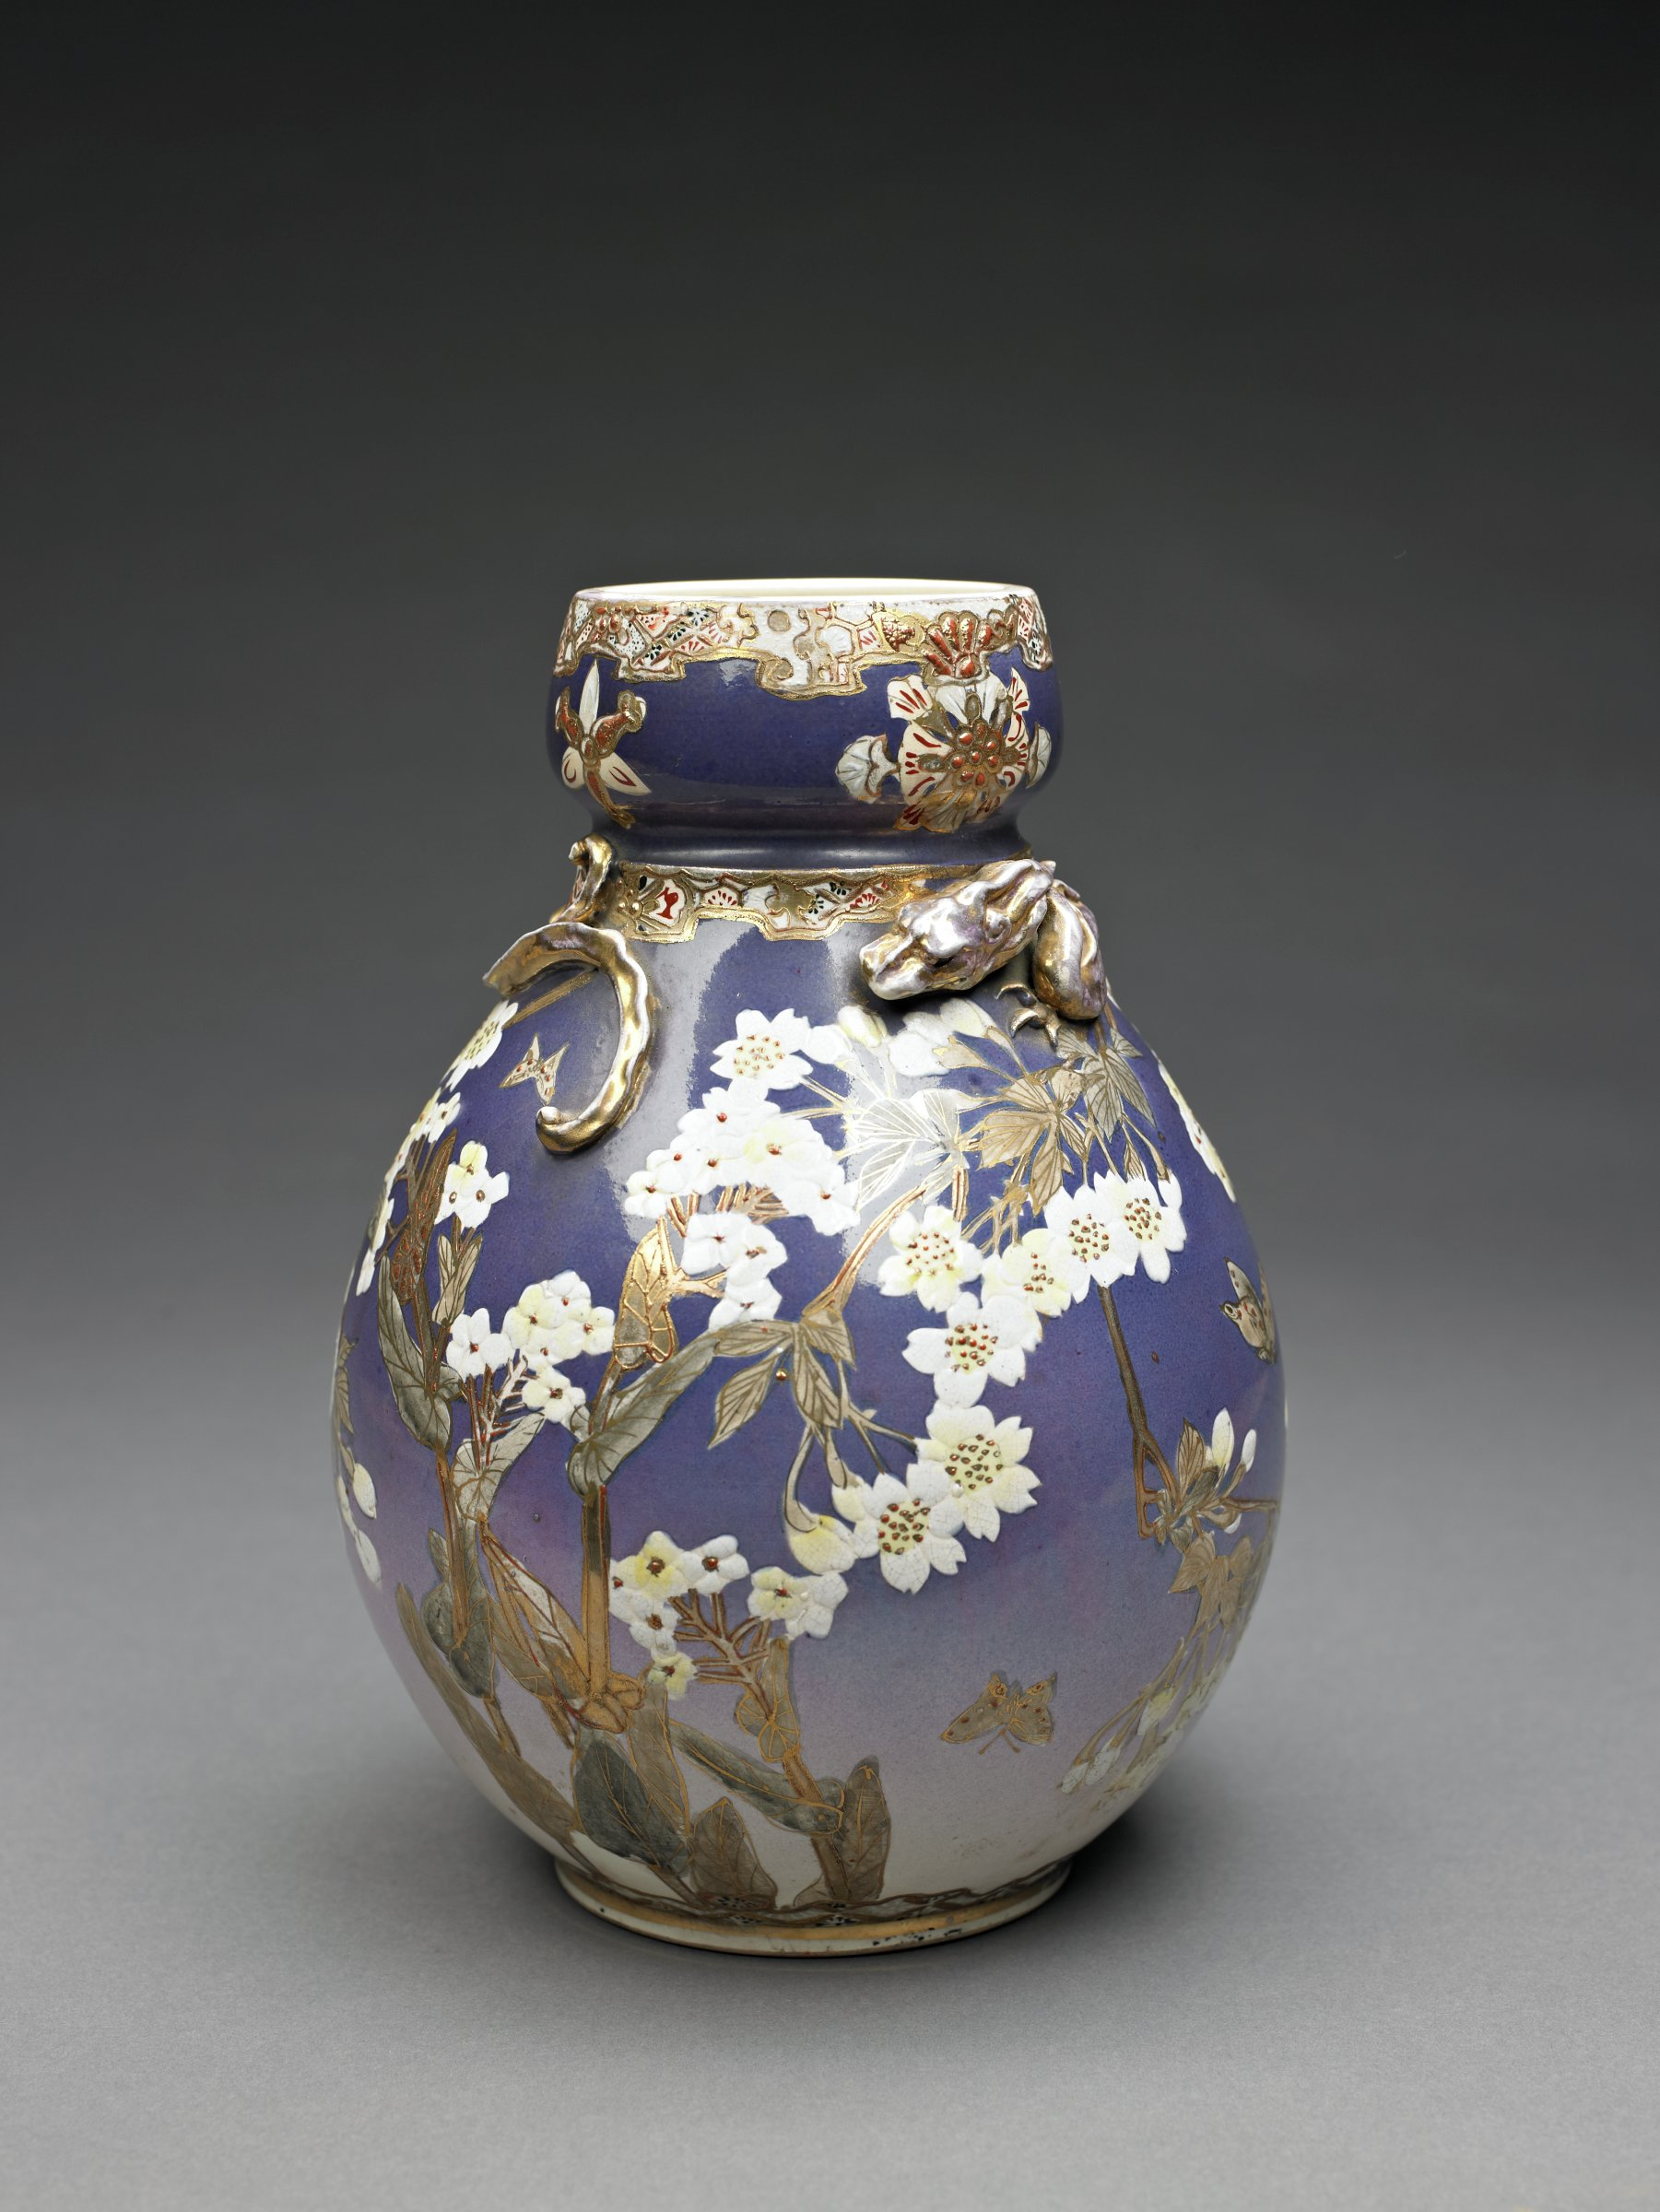 A double-gourd shaped vase. Upper and lower portion with a background of blue/purple that fades out at base of vase. Painted with five branches with yellow flowers (unidentified flower) and six butterflies in a spring setting. Raised gold decoration on veins of leaves, stamens of flowers and wings of butterflies. Upper portion decorated with four chevron floral designs equally spaced on blue ground. A dentated floral band around lip and around shoulder where spheres join. A worn, gilded dragon crawls in and out of the surface of the vase and the top of the first sphere. Cream-colored glaze on interior and on foot. Four character mark on foot.